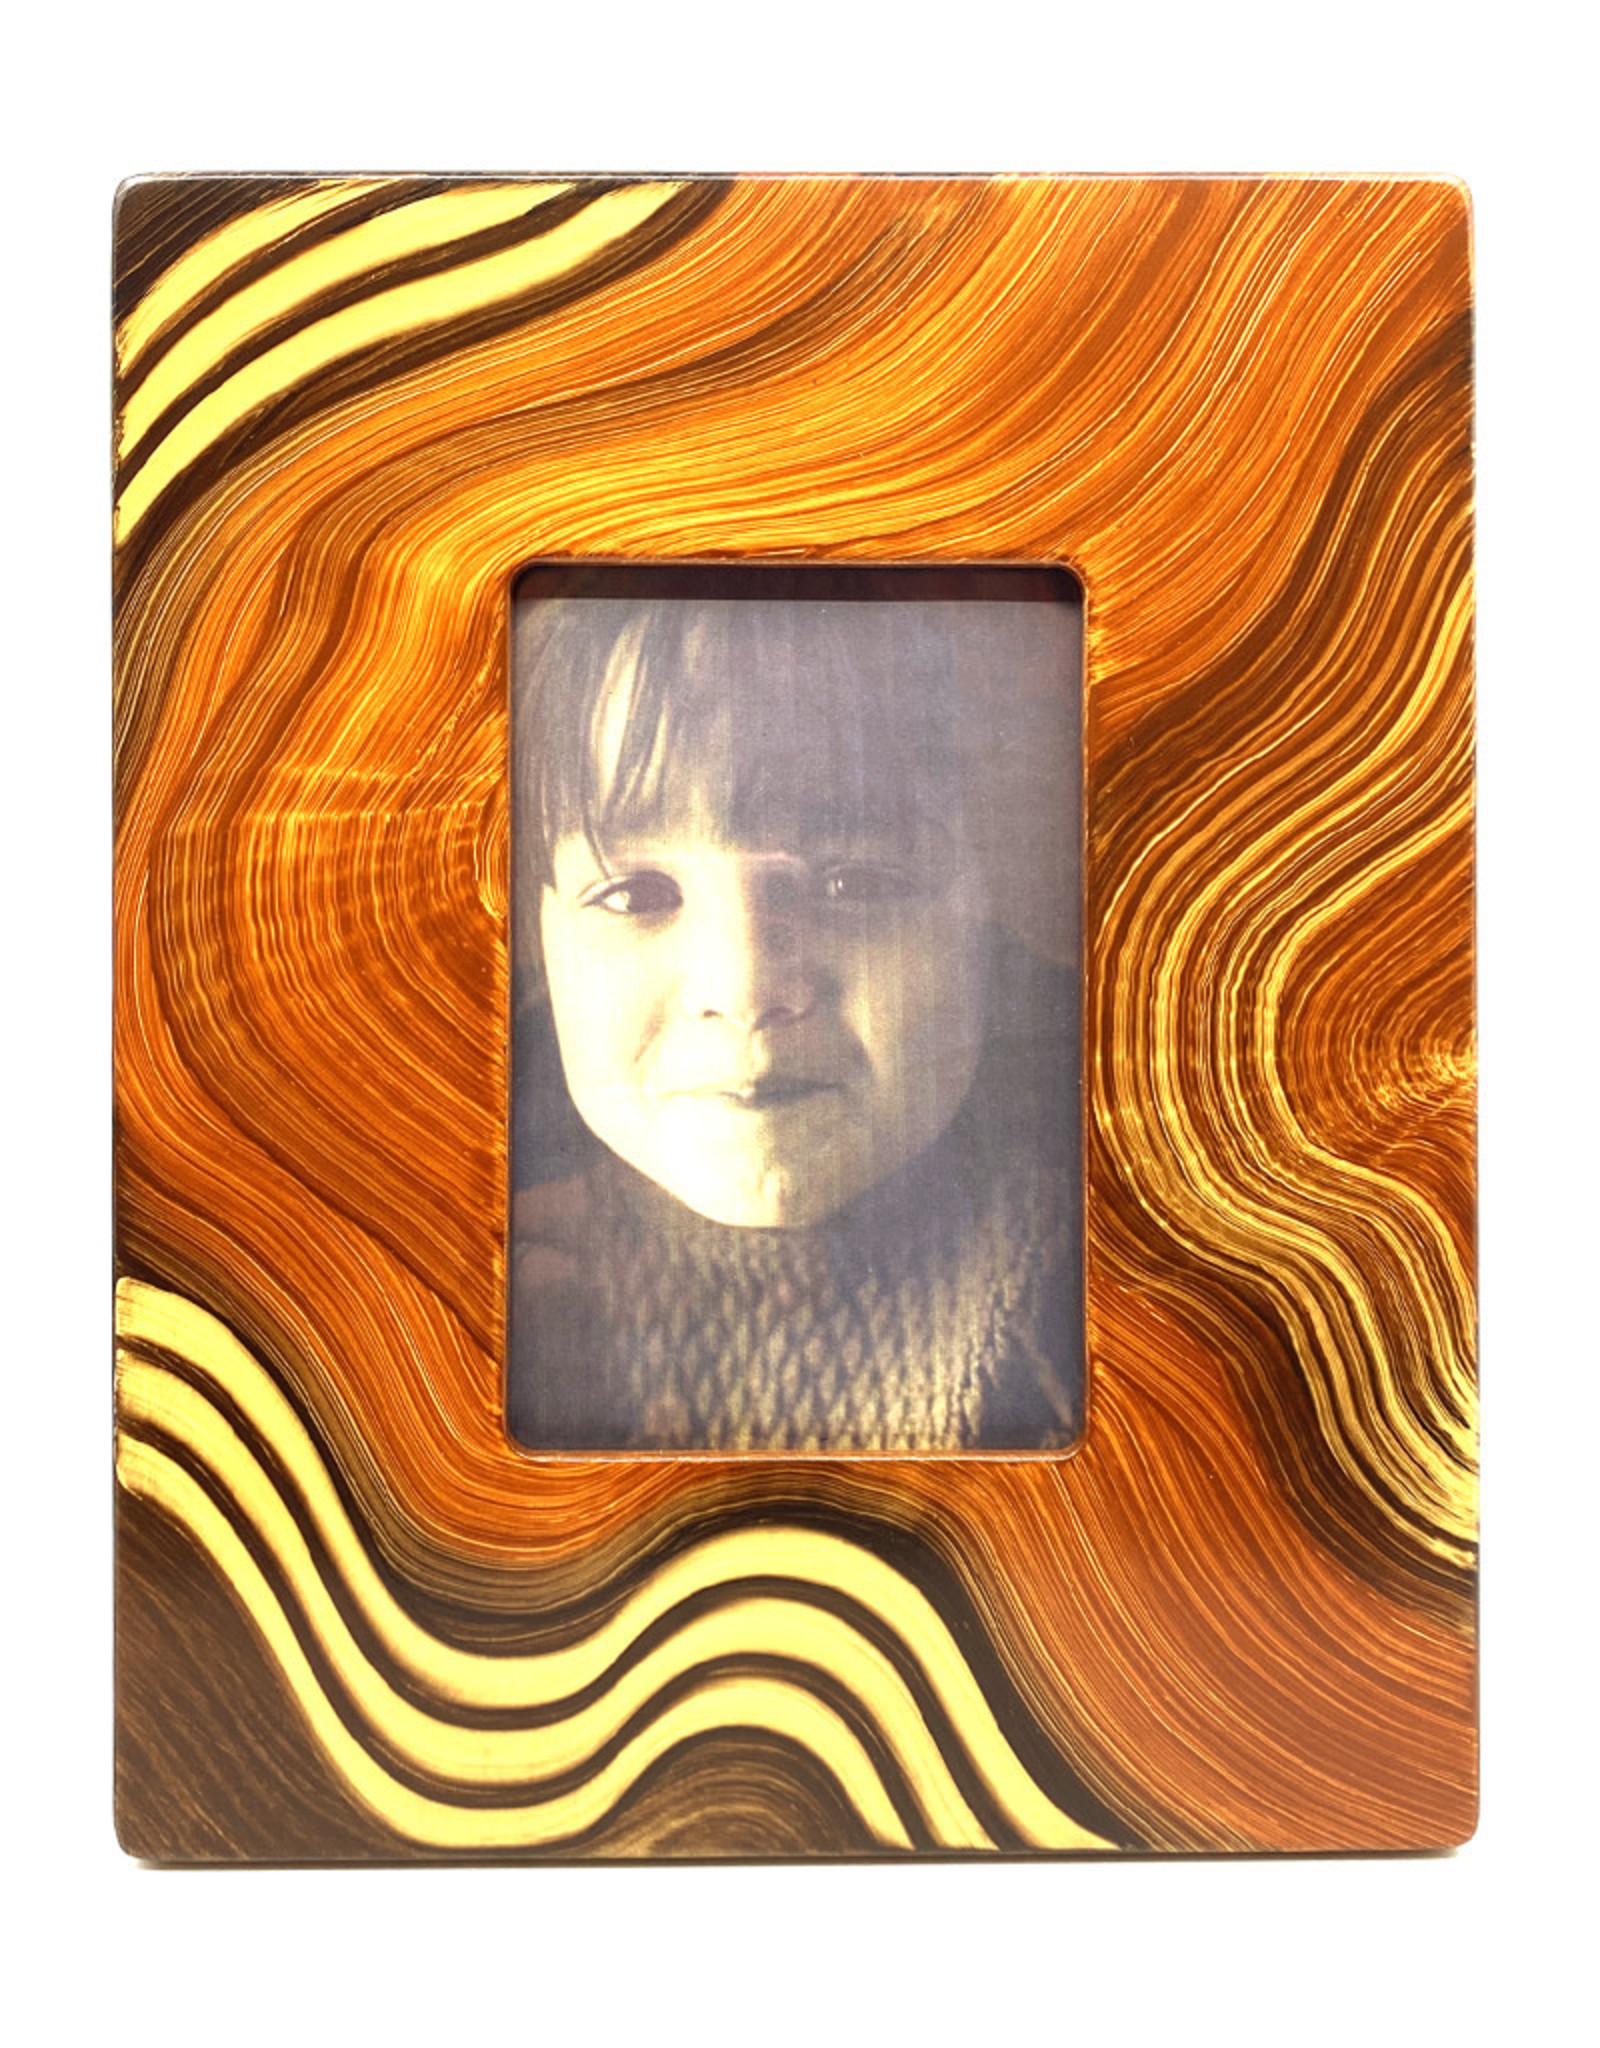 GRANT-NOREN 4X6 WAVES OF GRAIN PICTURE FRAME